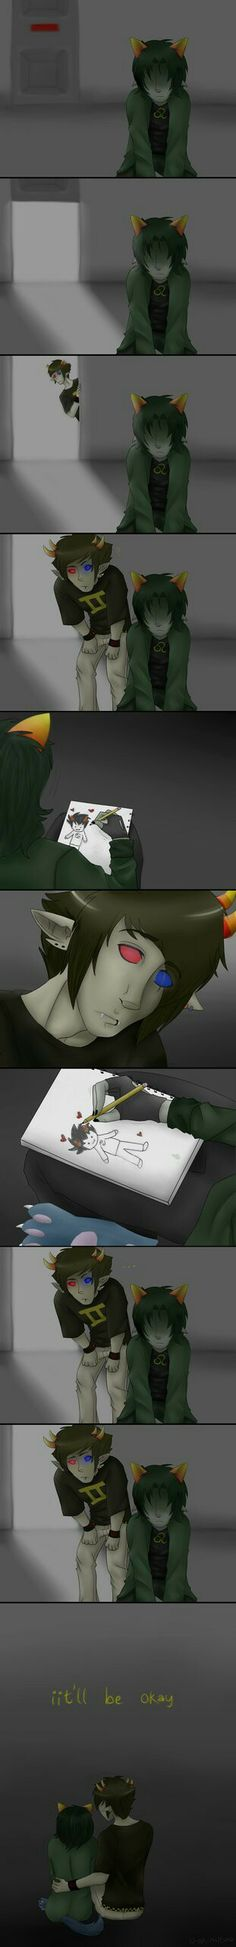 I never will ship this, but I can see sollux coming up to give nep some courage to ask Karkat to be her matesprite